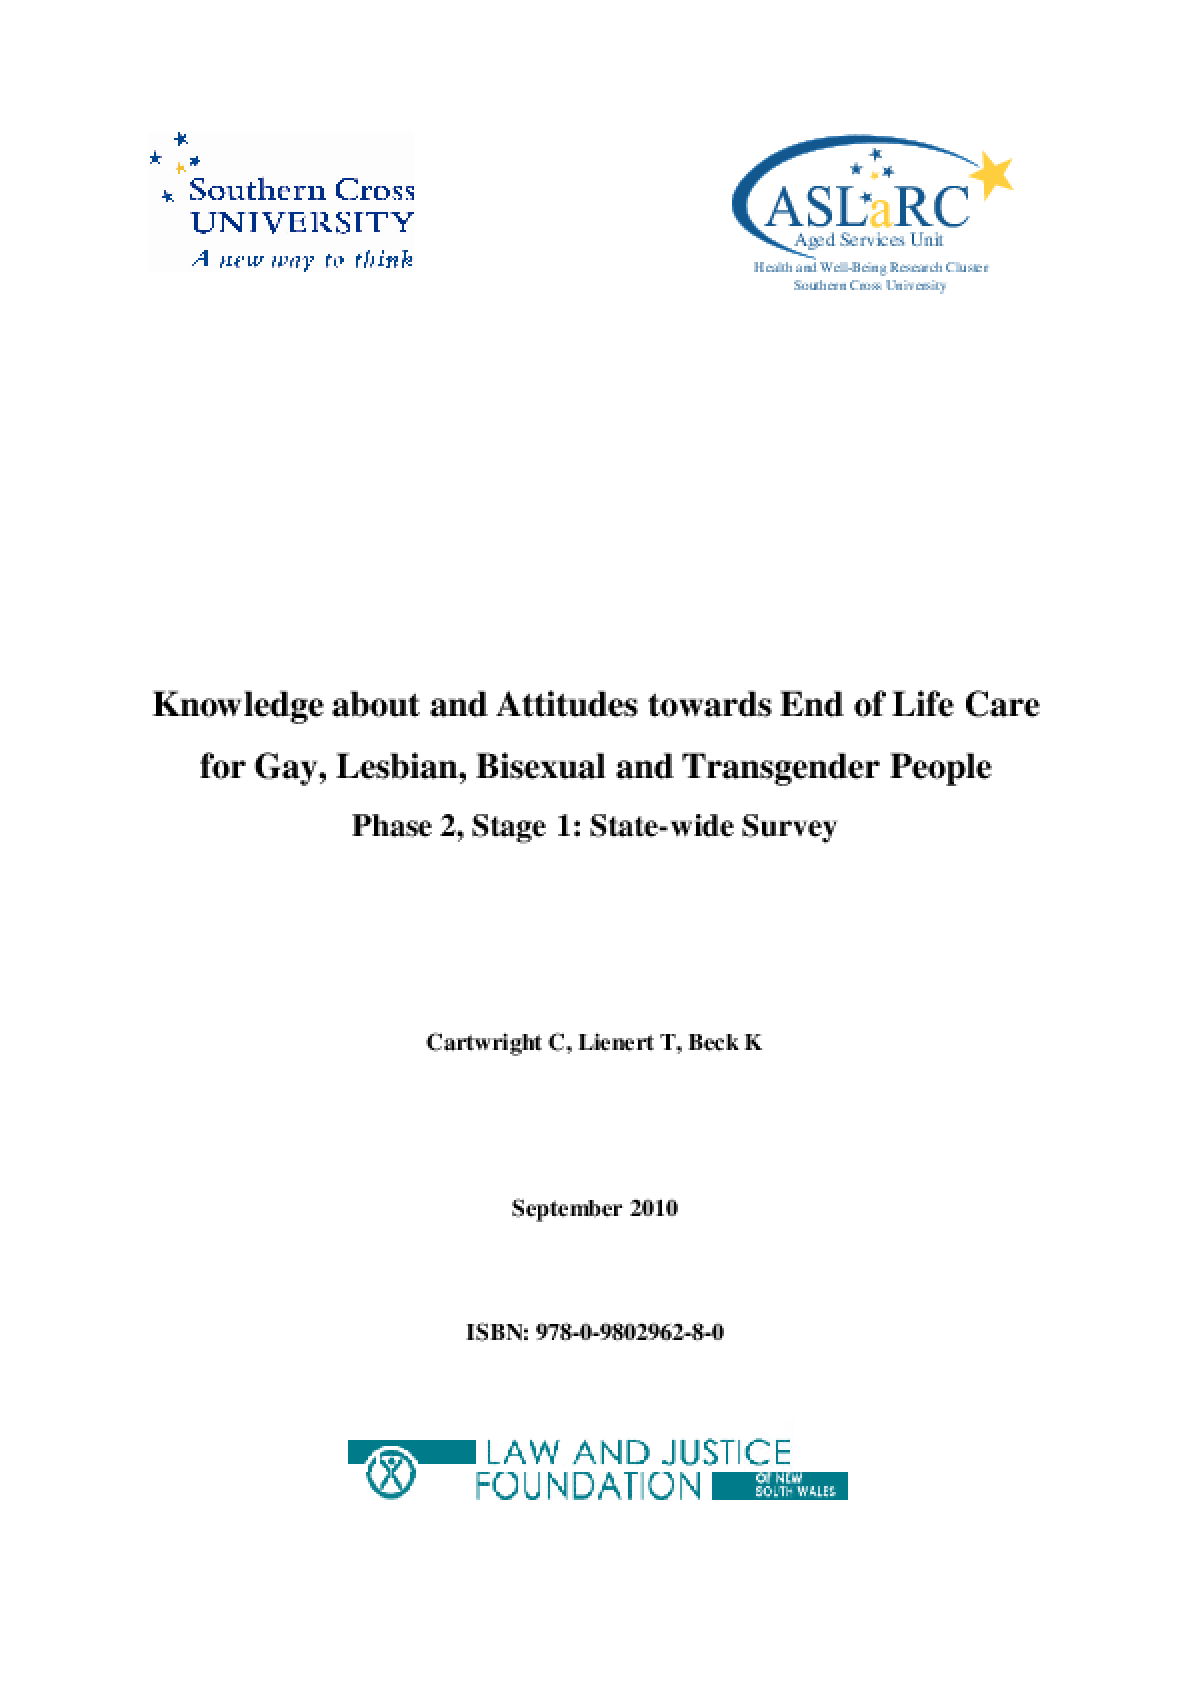 Knowledge About and Attitudes towards End of Life Care for Gay, Lesbian, Bisexual & Transgender People (Phase 2)